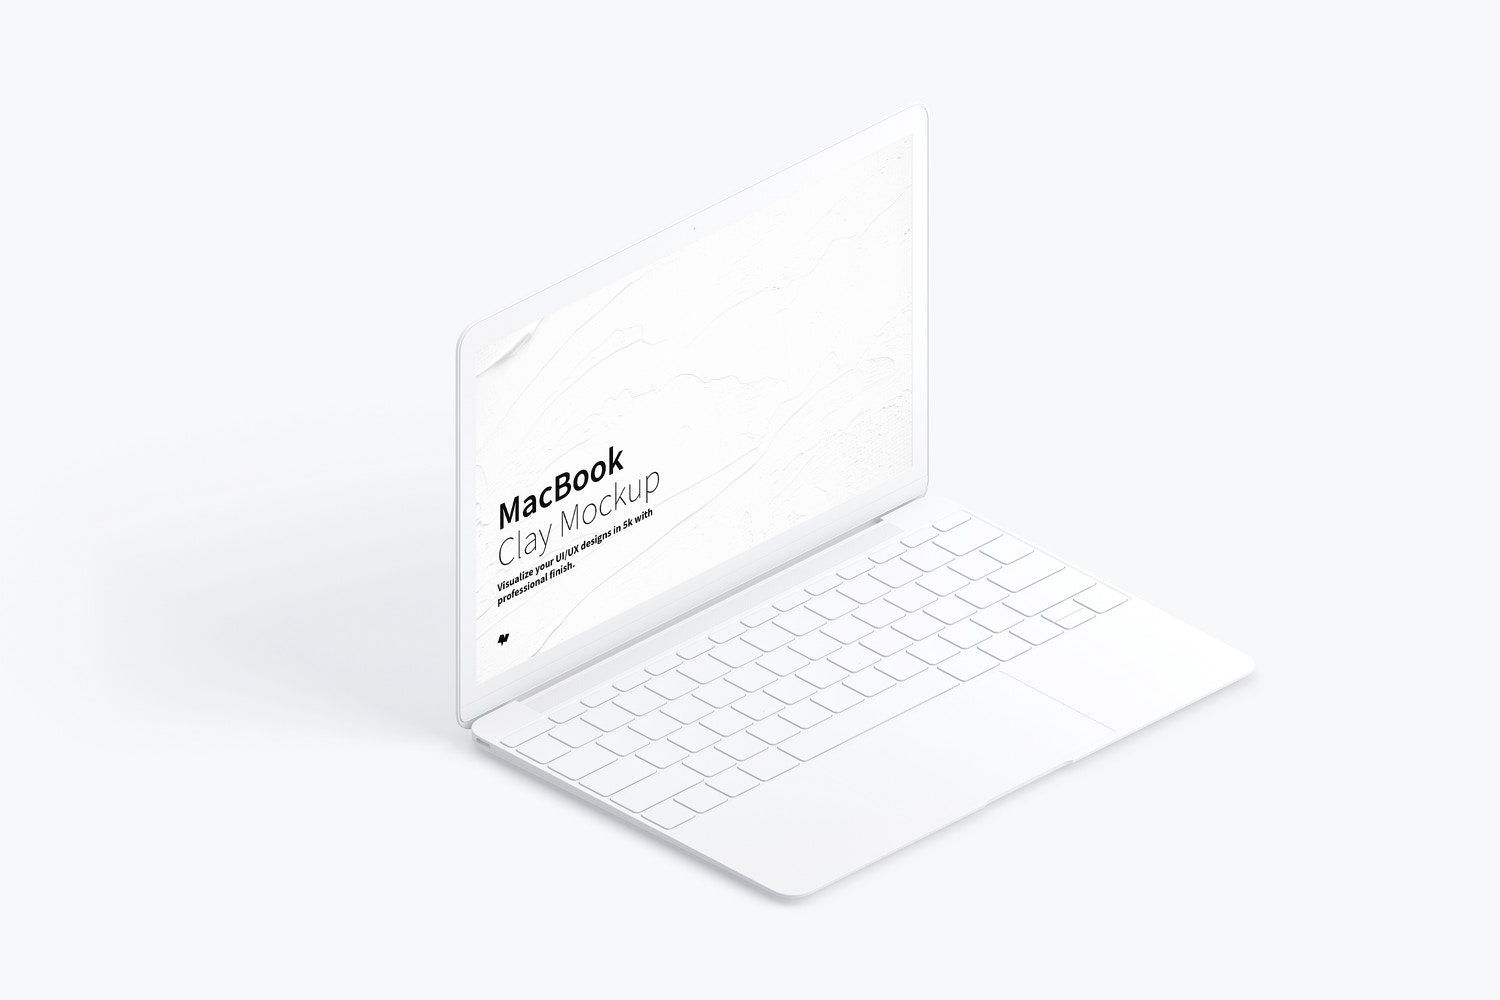 Clay MacBook Mockup, Isometric Left View (1) by Original Mockups on Original Mockups